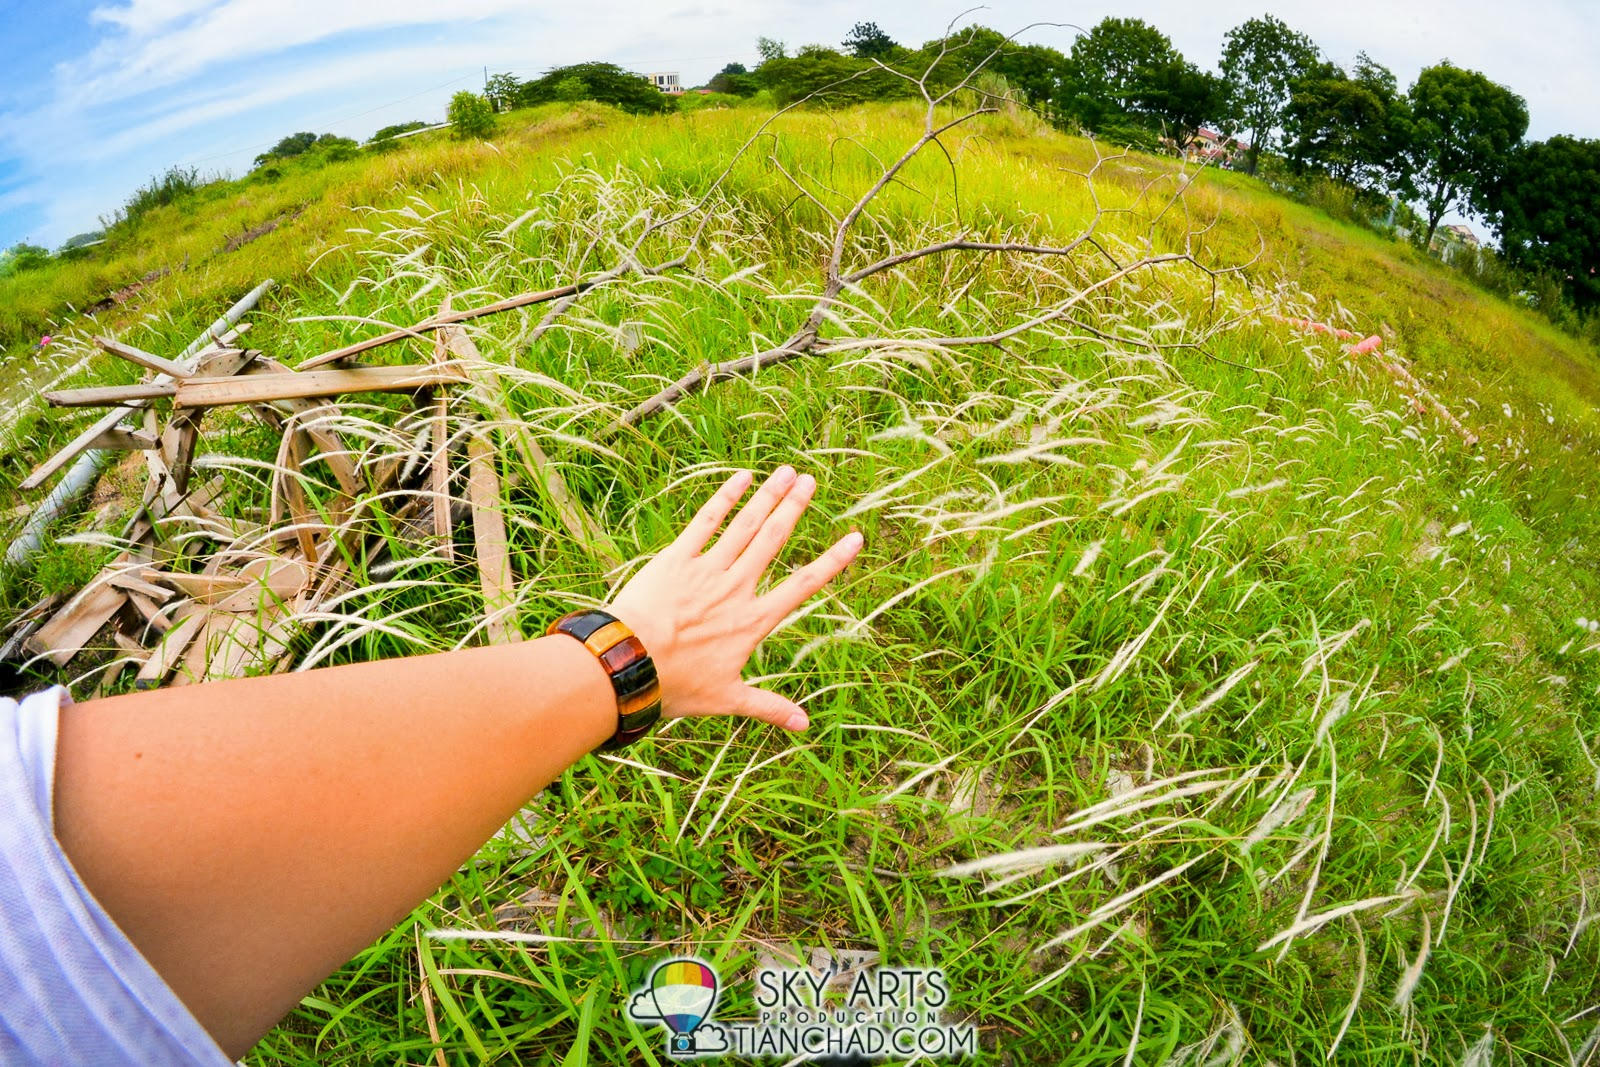 Samsung Galaxy Note 3 Gear Launch In Malaysia Rm2399 Rm999 Kopi Bos By Ila Arifin Amr Spotted A Place With Nice Grasses